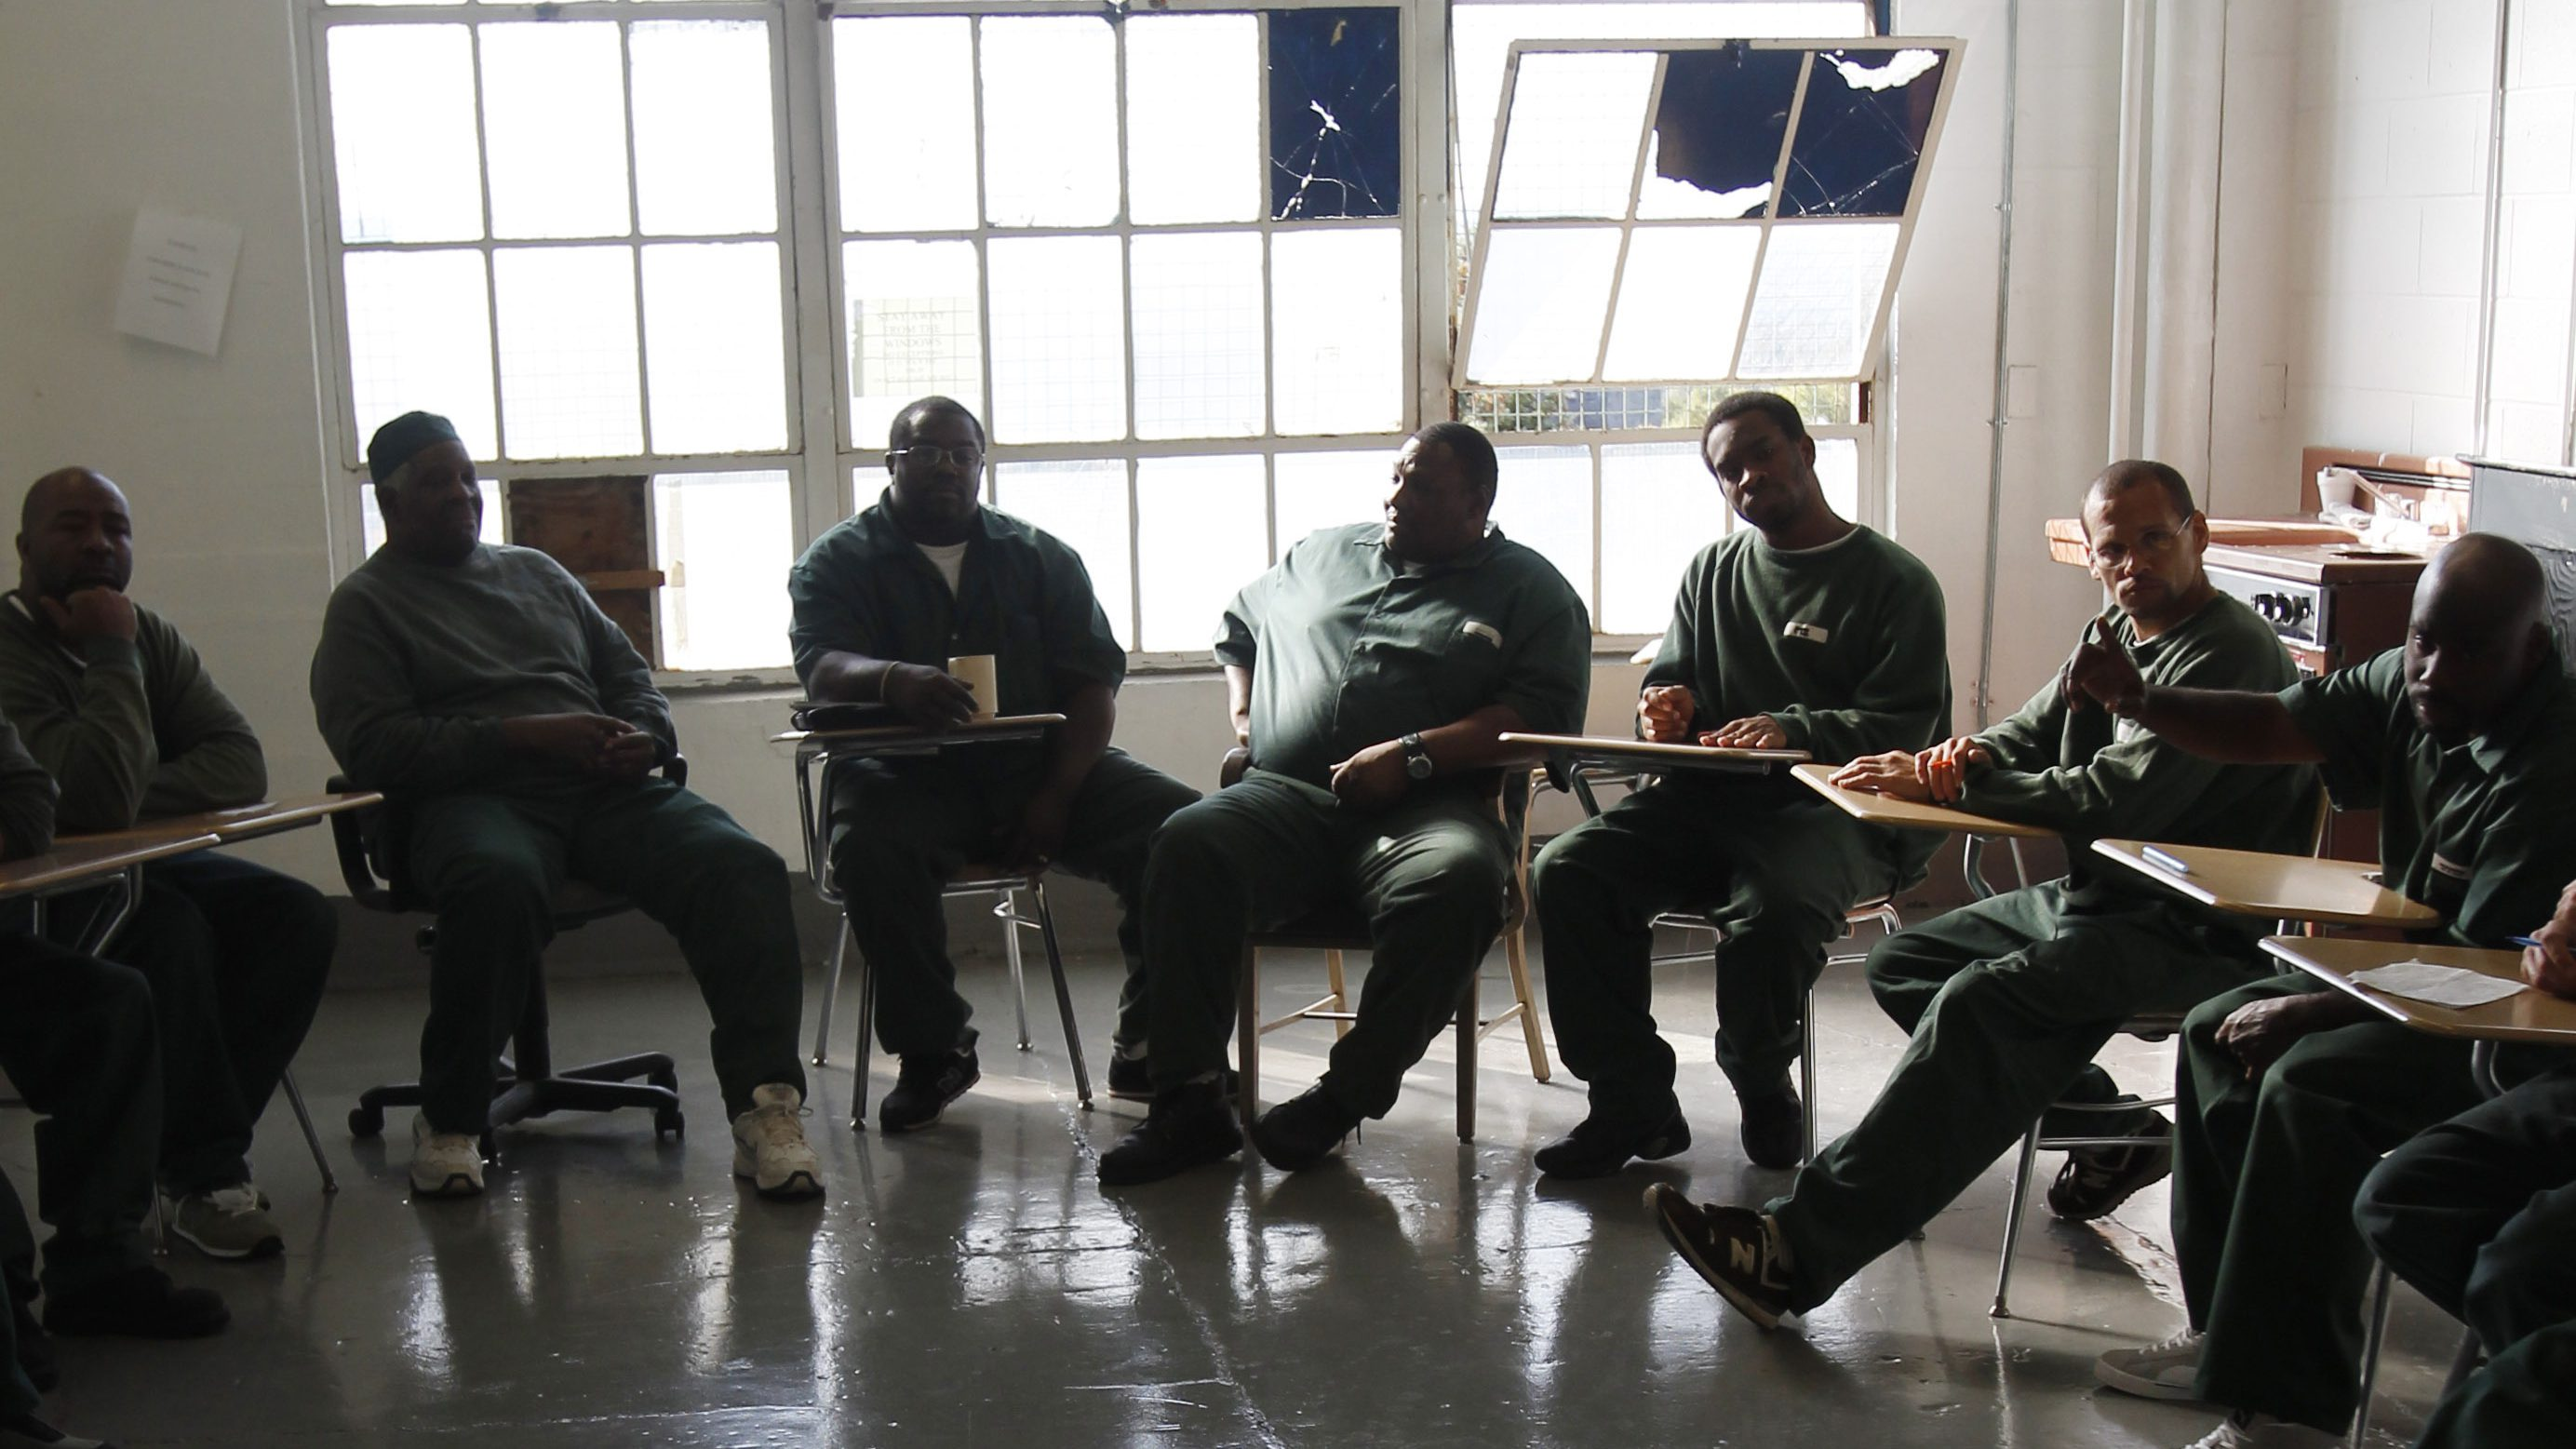 """FILE  - In this Oct. 6, 2011 file photo, inmates who are serving long-term or life sentences participate in a Lifer's and Long-Termer's Organization meeting at Clinton Correctional Facility, a maximum-security prison in Dannemora, N.Y.  The prison where two convicted killers pulled off a """"Shawshank Redemption""""-style escape this weekend has a reputation for brutality.  A 2014 report by the Correctional Association of New York, an independent non-profit that inspects state prisons and report on conditions, found that Clinton Correctional Facility is a place where there is little oversight, guards regularly beat inmates, and racial tension festers between its prisoners and correction officers. (AP Photo/Mike Groll, File)"""